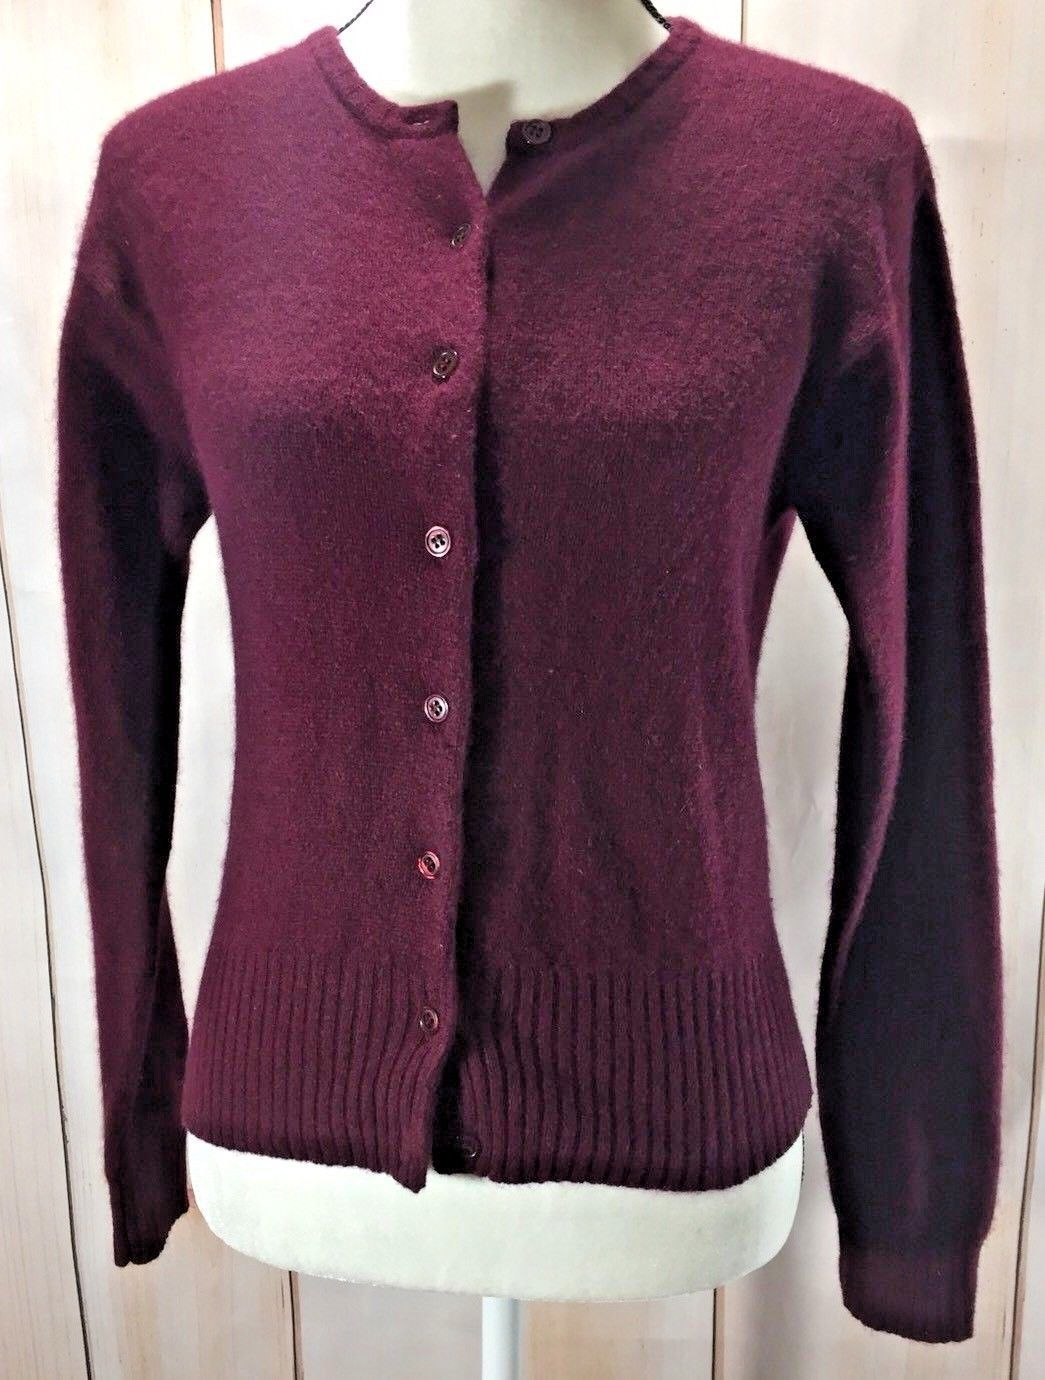 Primary image for B. Moss Tailor Angora Blend Long Sleeve Button Up Cardigan Sweater Size S Plum